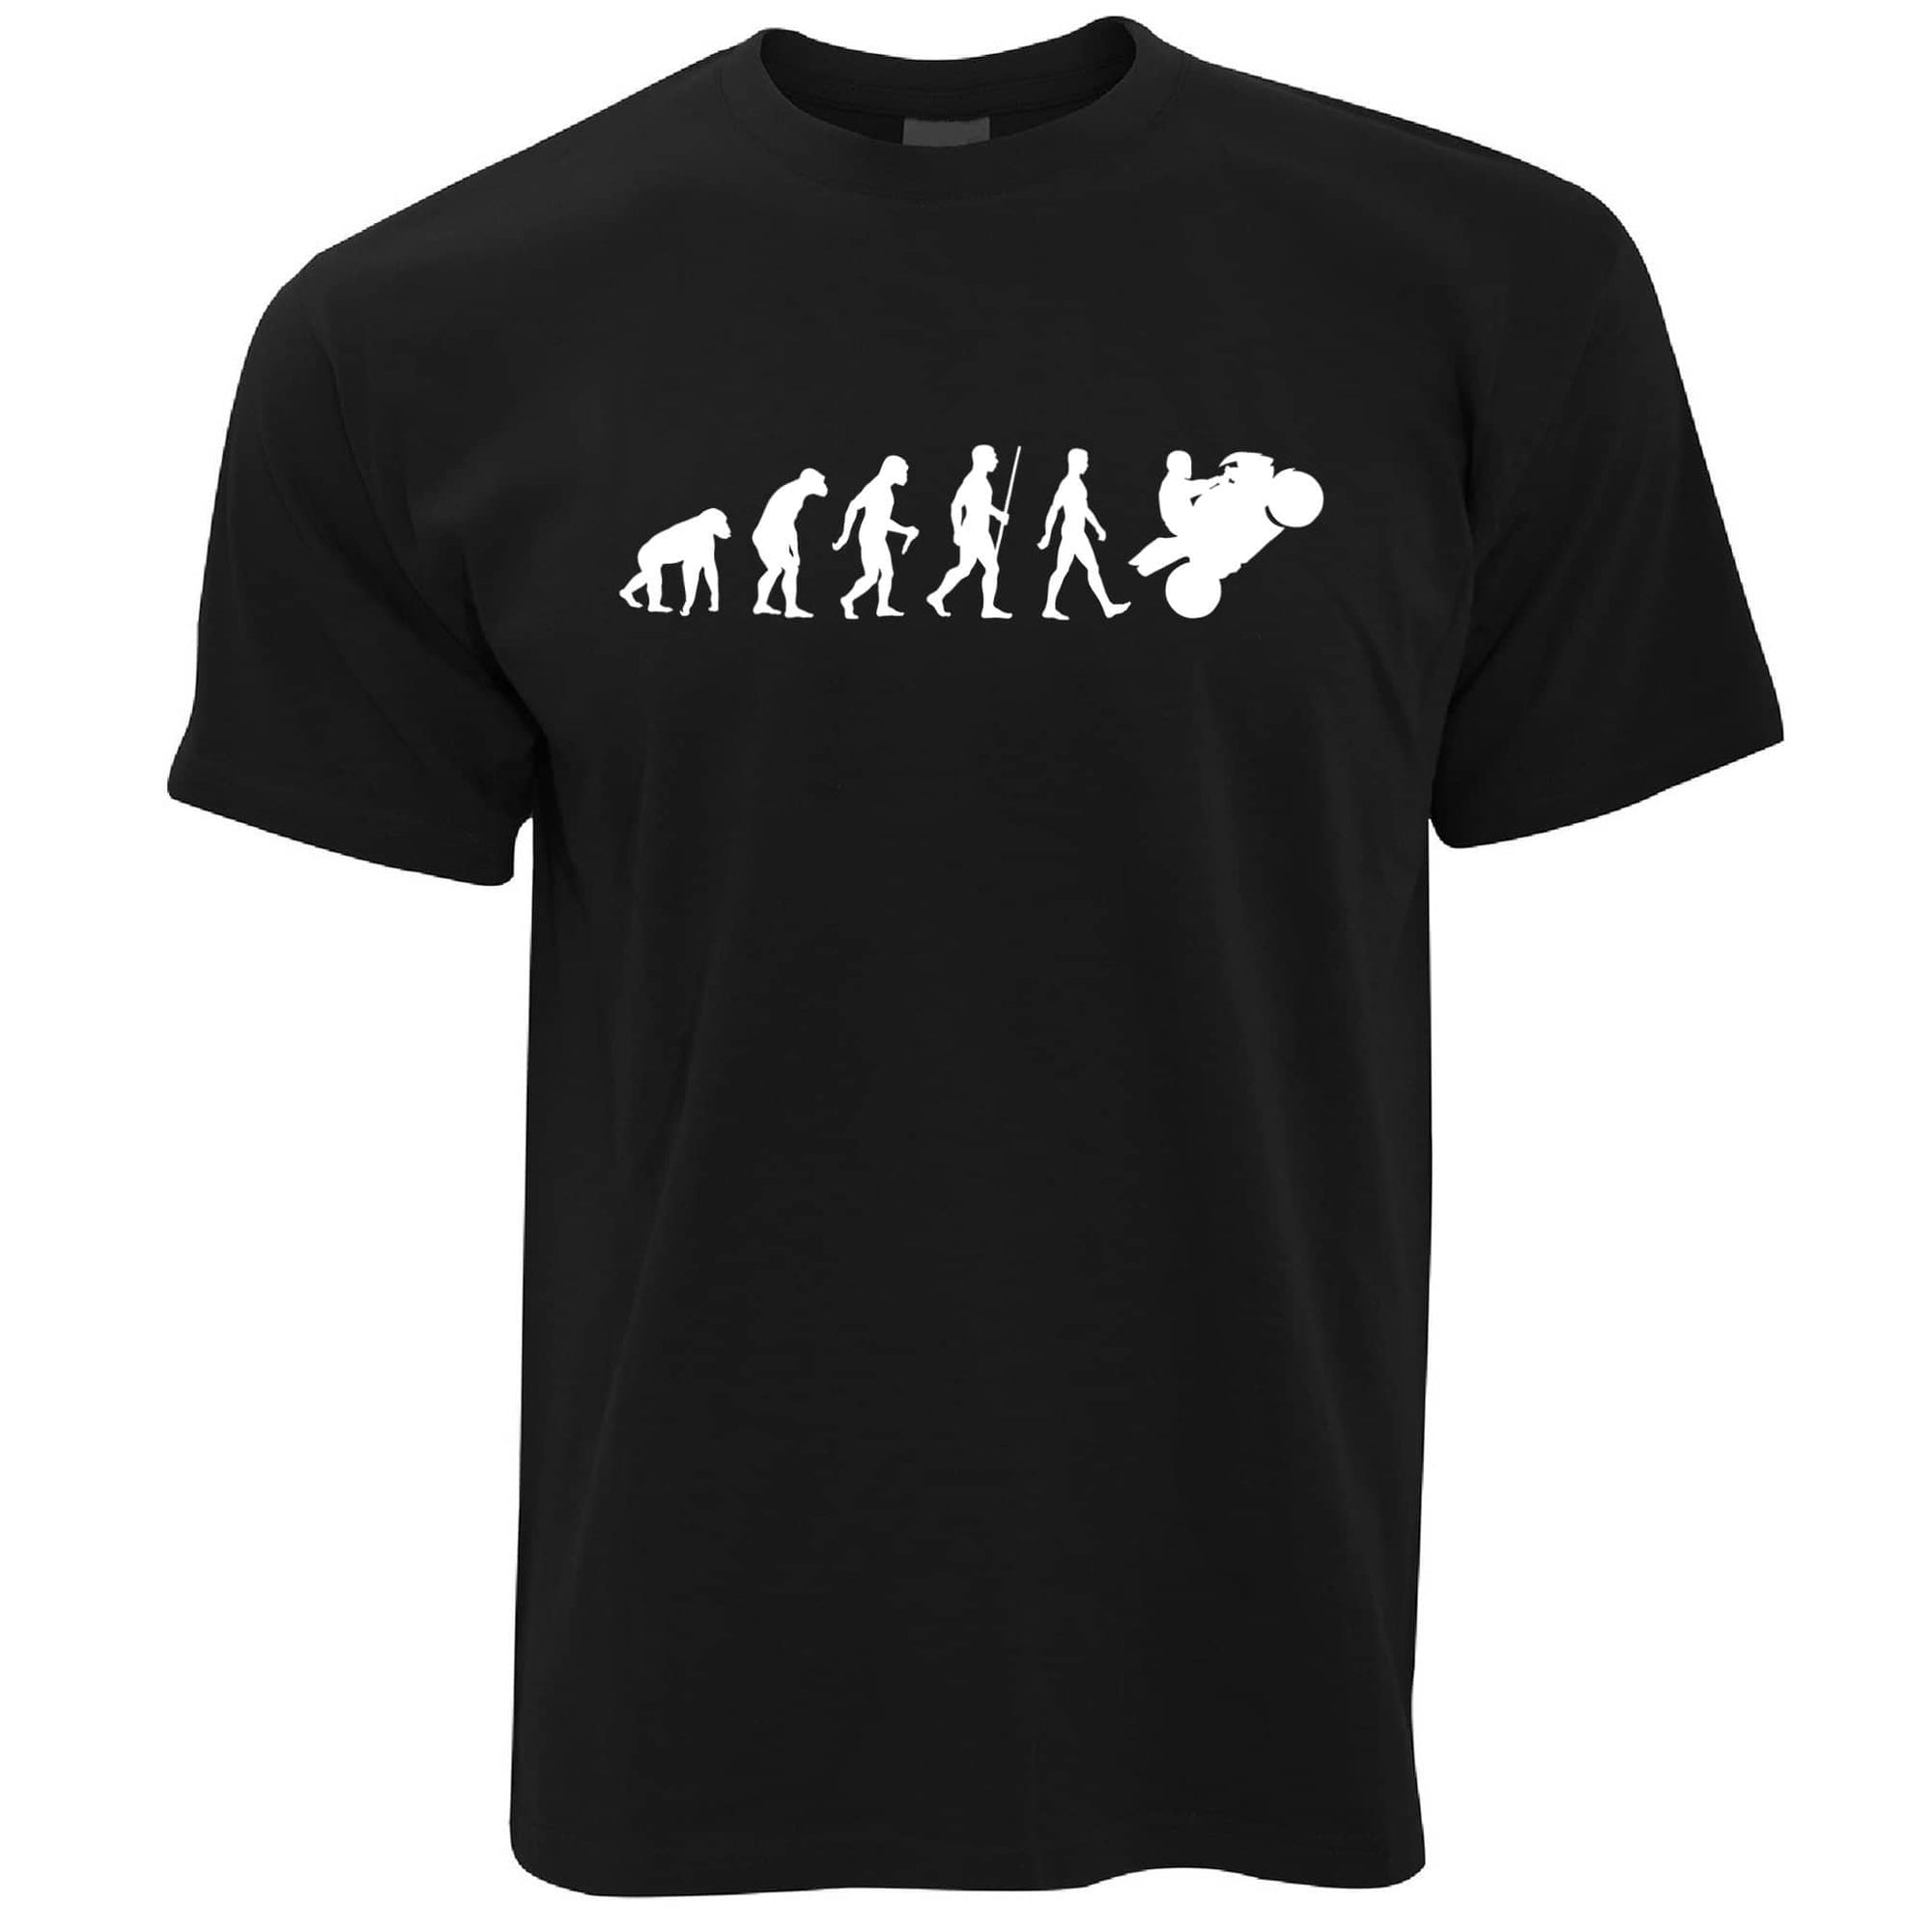 Evolution of a Biker Motorcyclist T-shirt in Black